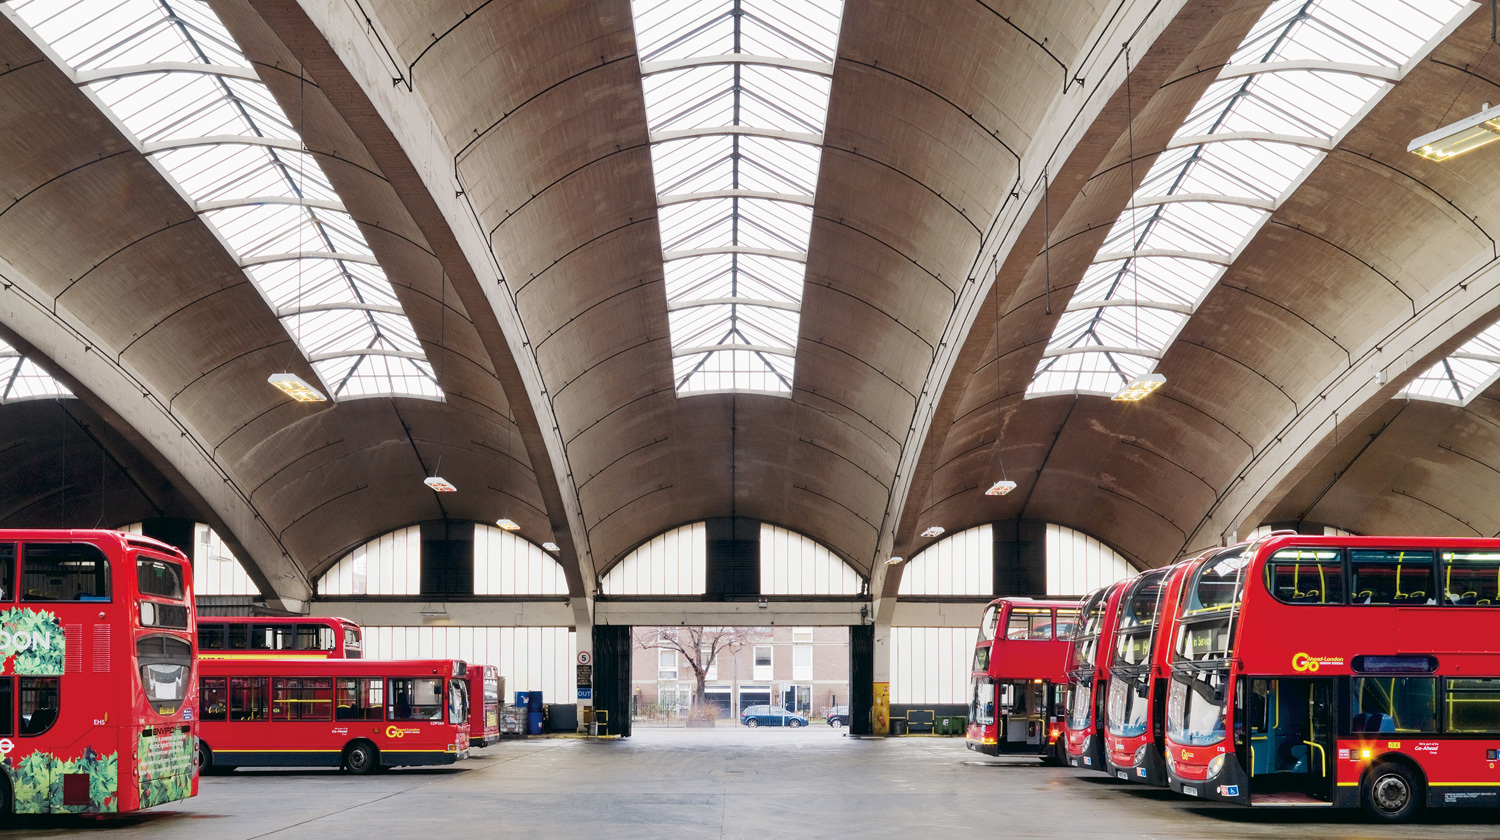 Ten really boring but inexplicably beautiful London buildings